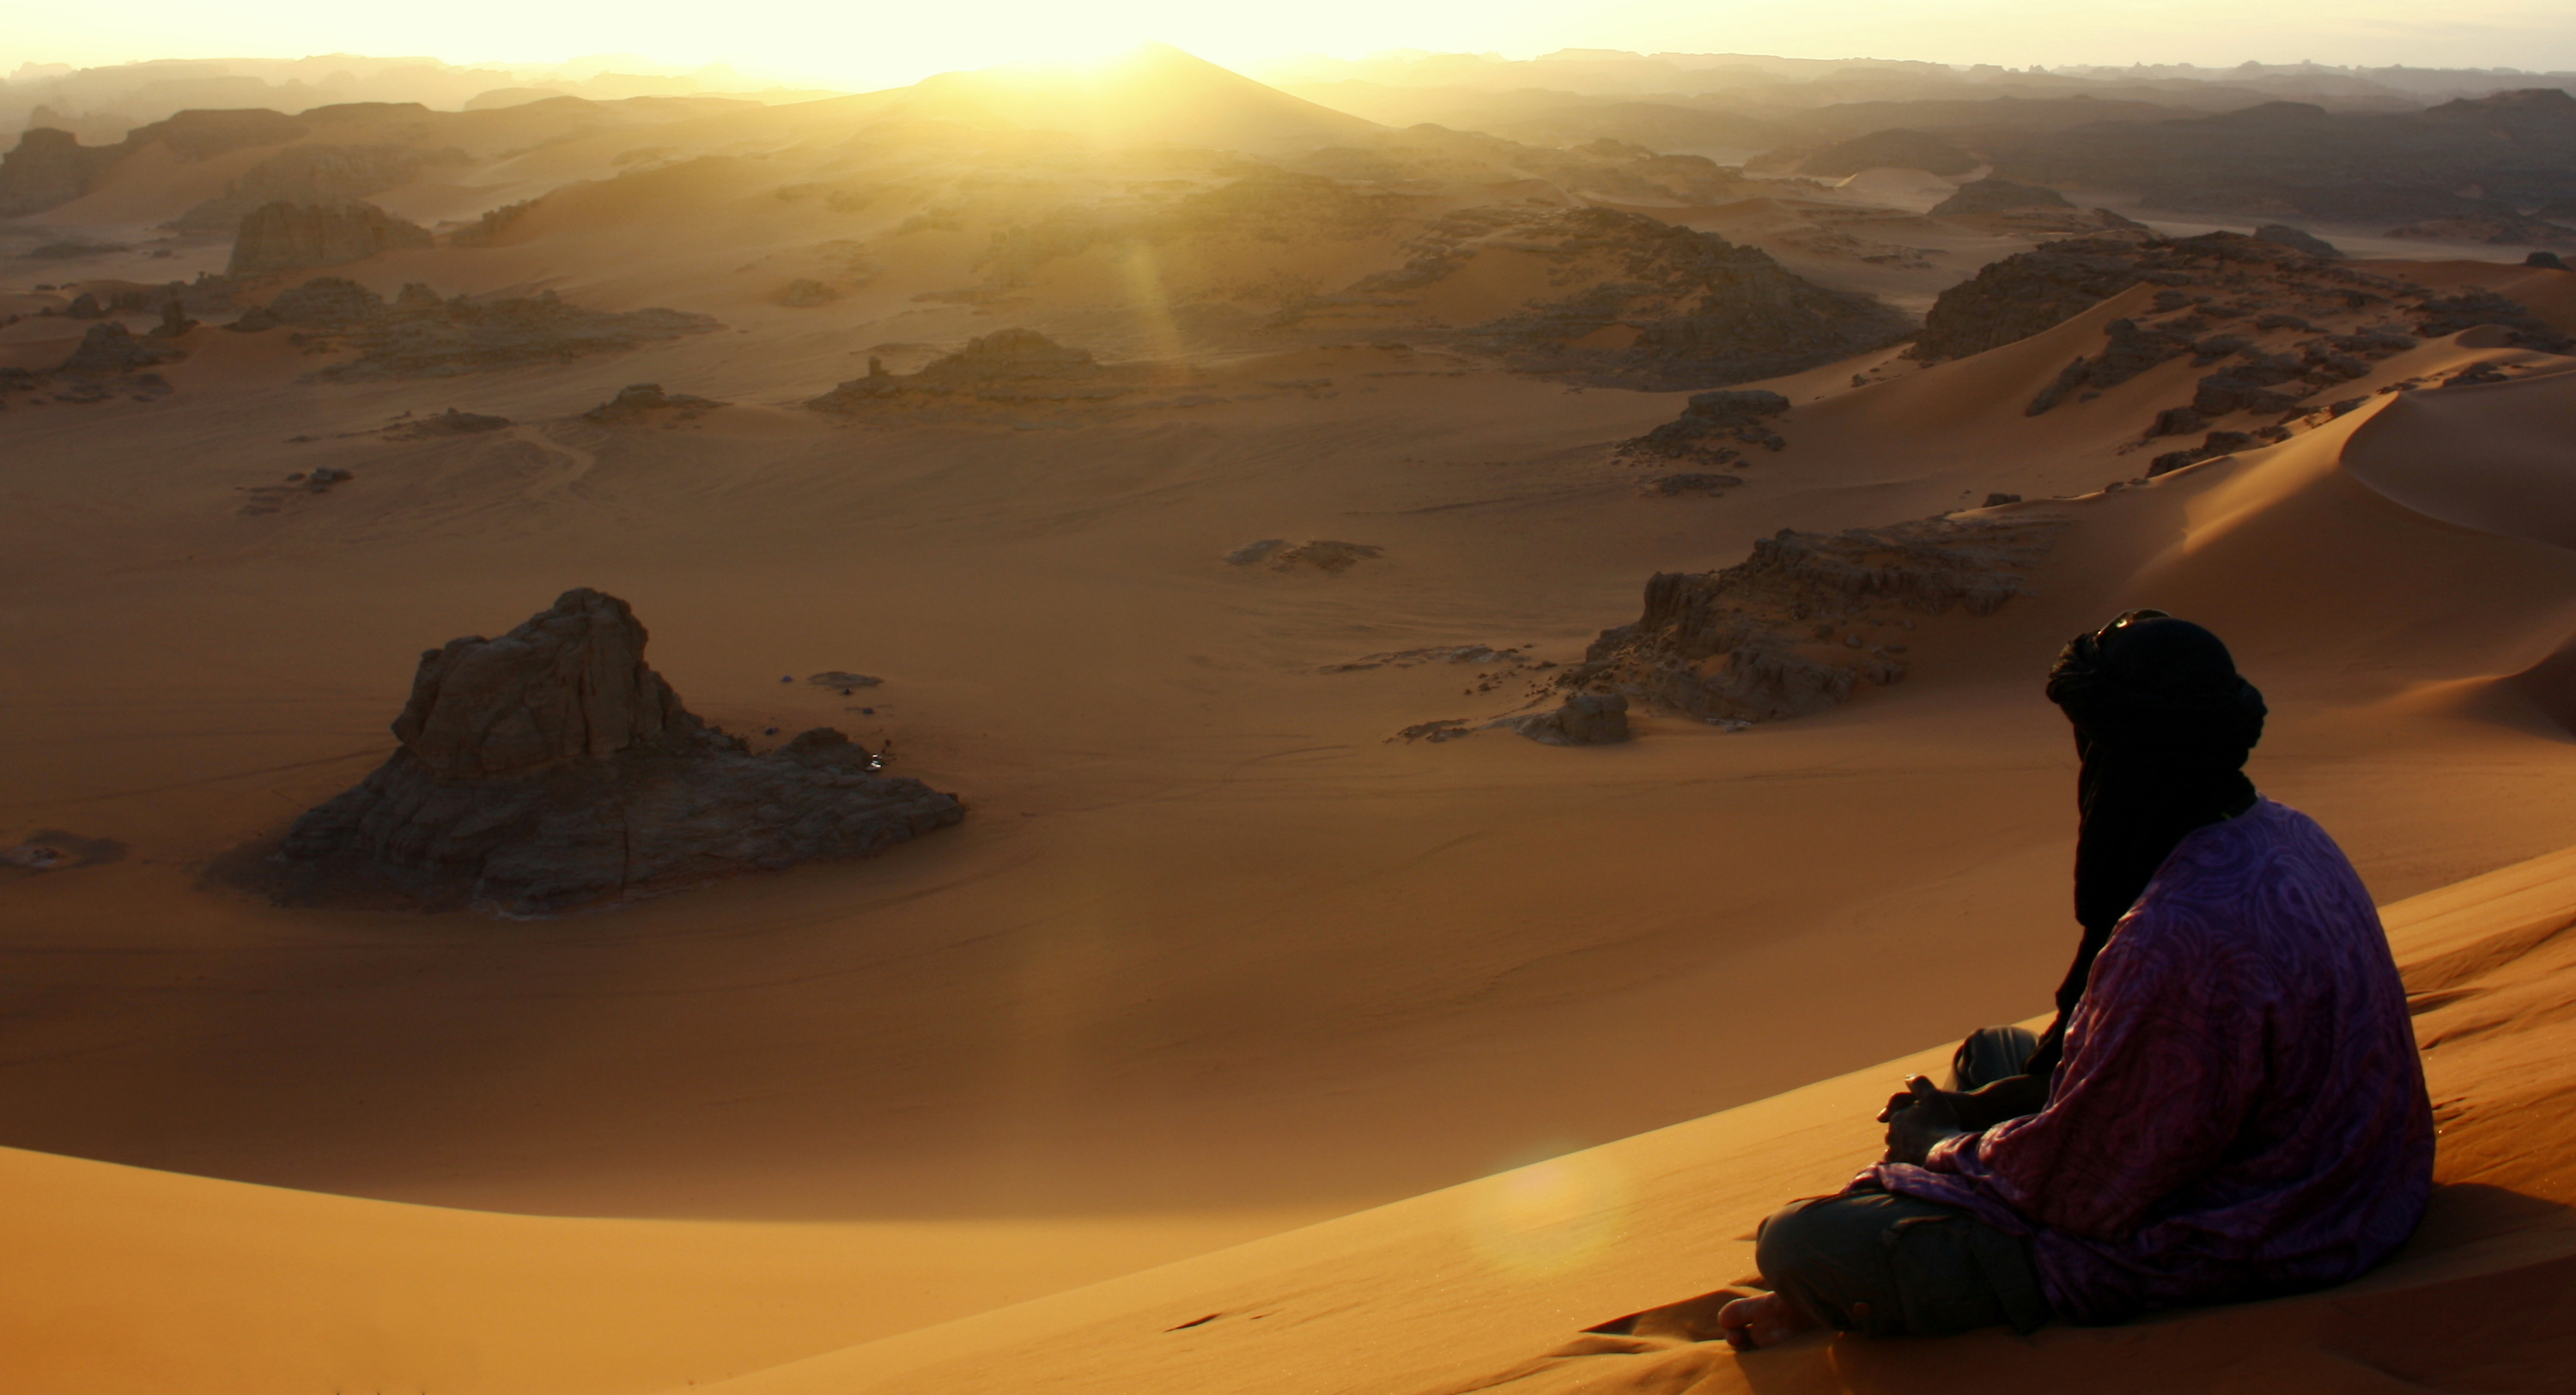 Tuareg on the dune of Timerzouga, Tassili